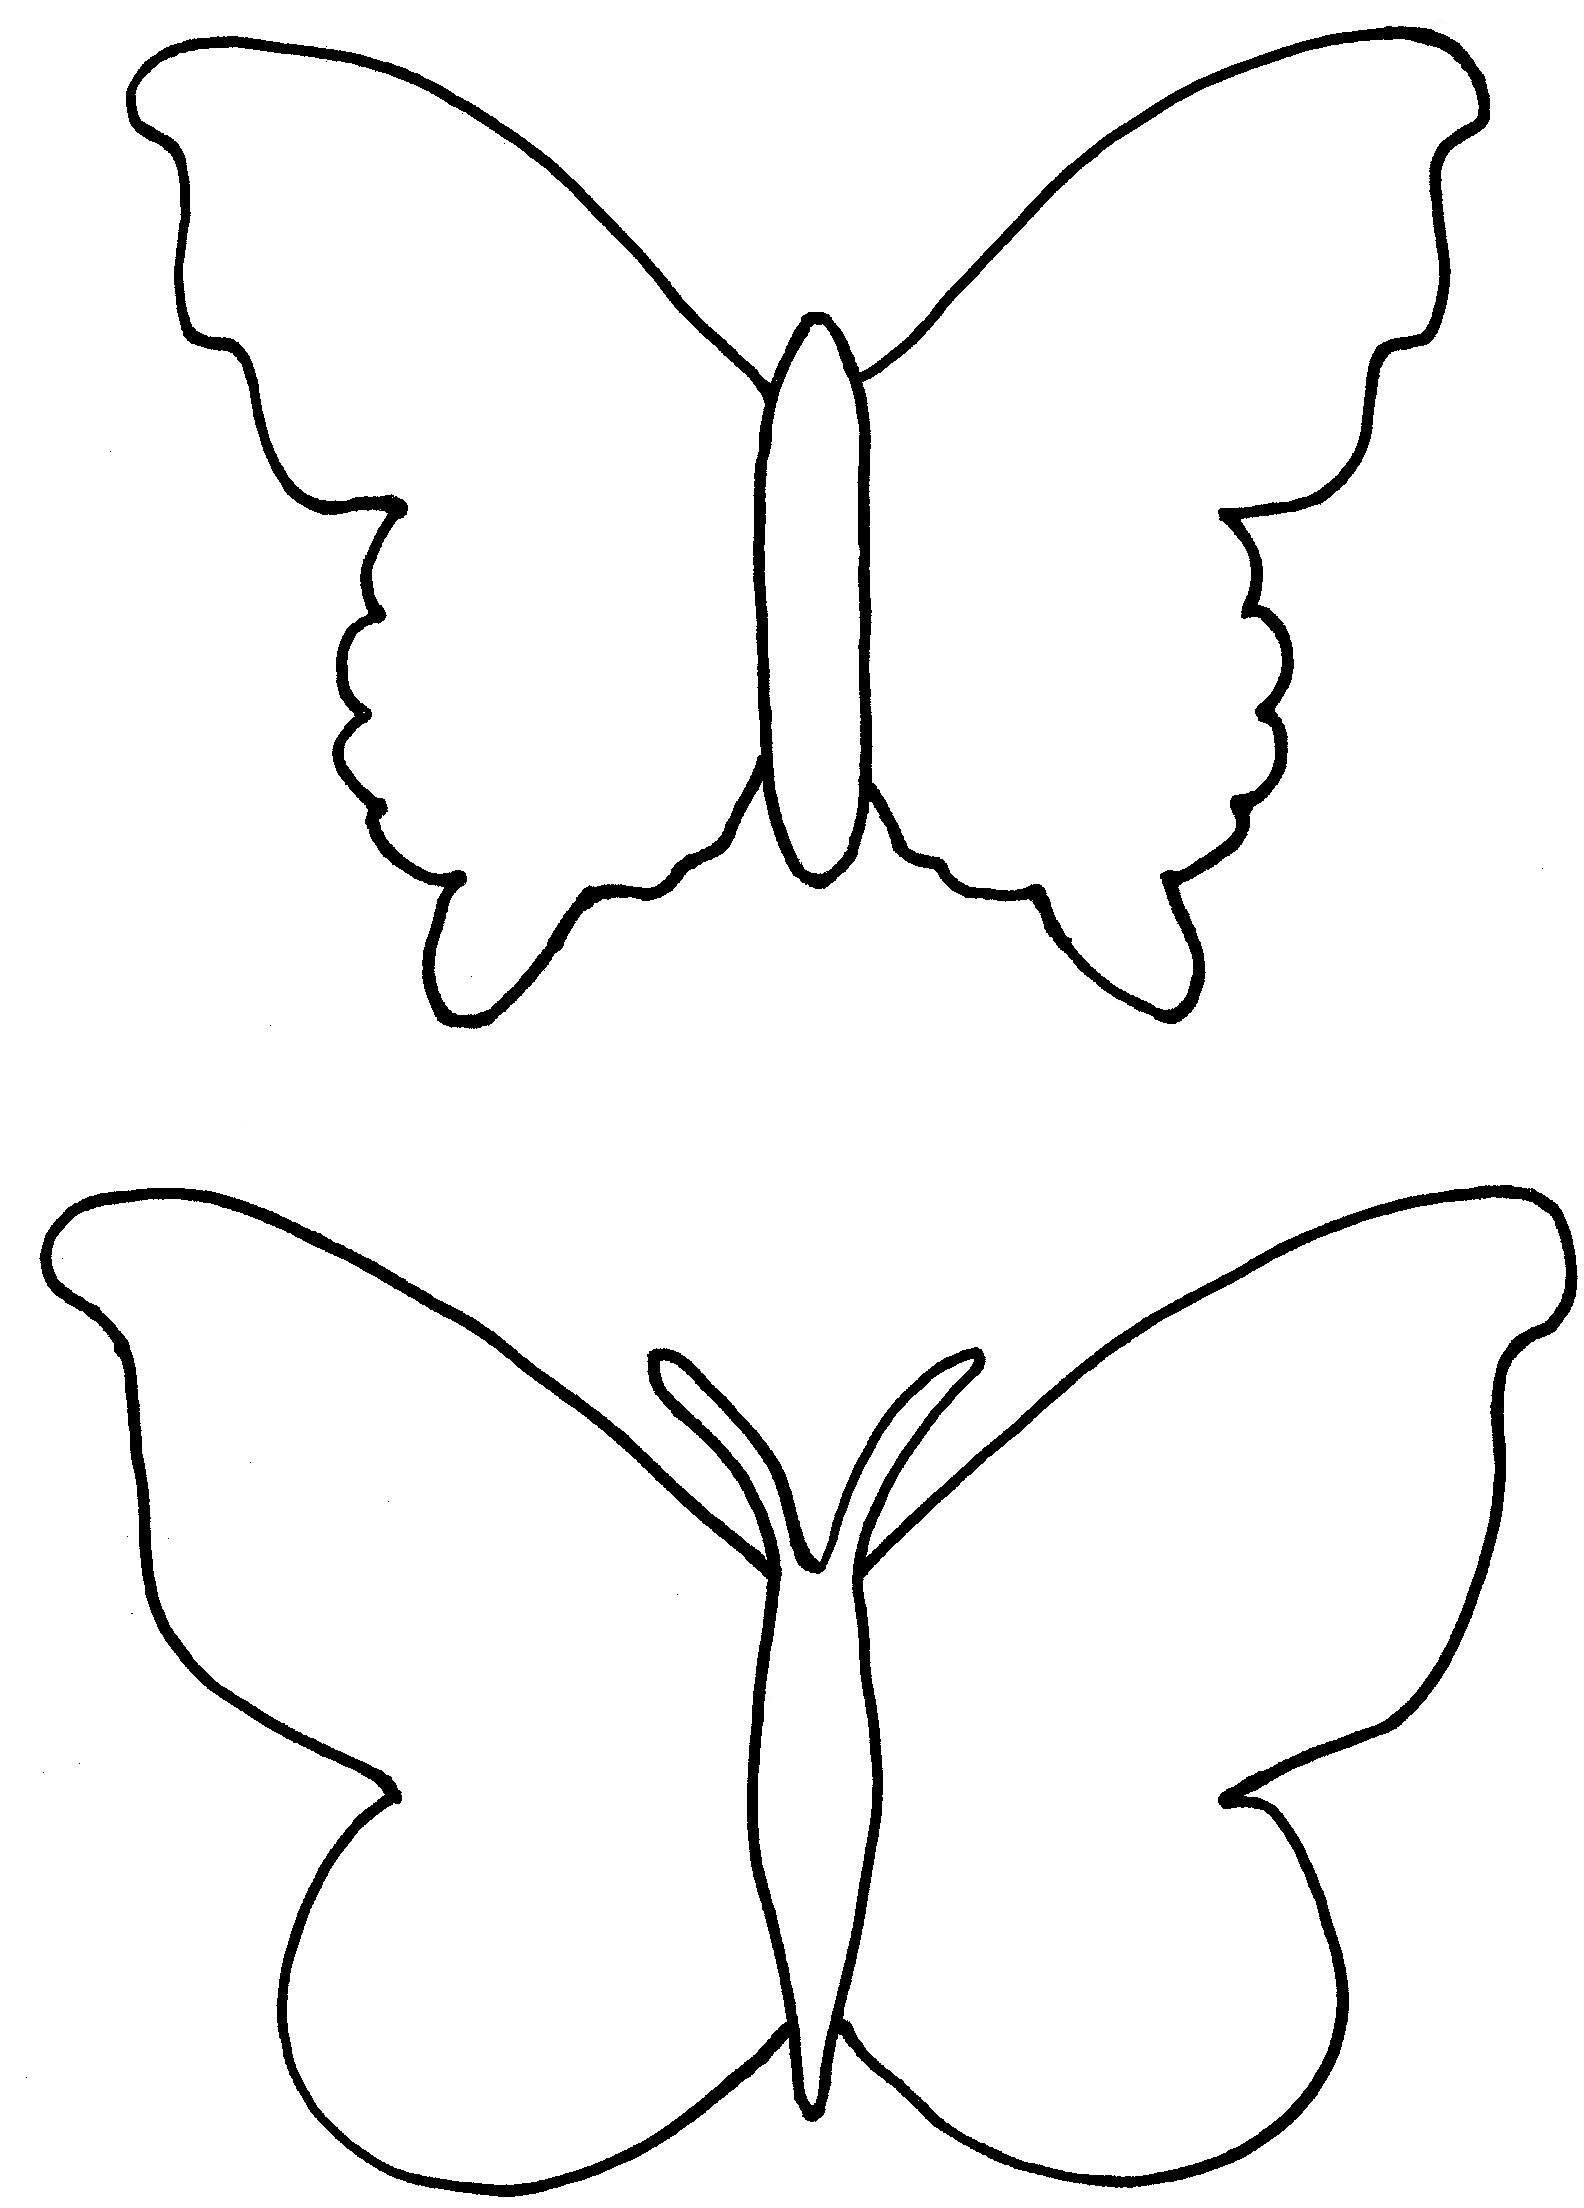 Butterfly cocoon coloring pages - Butterfly Cocoon Coloring Pages 44